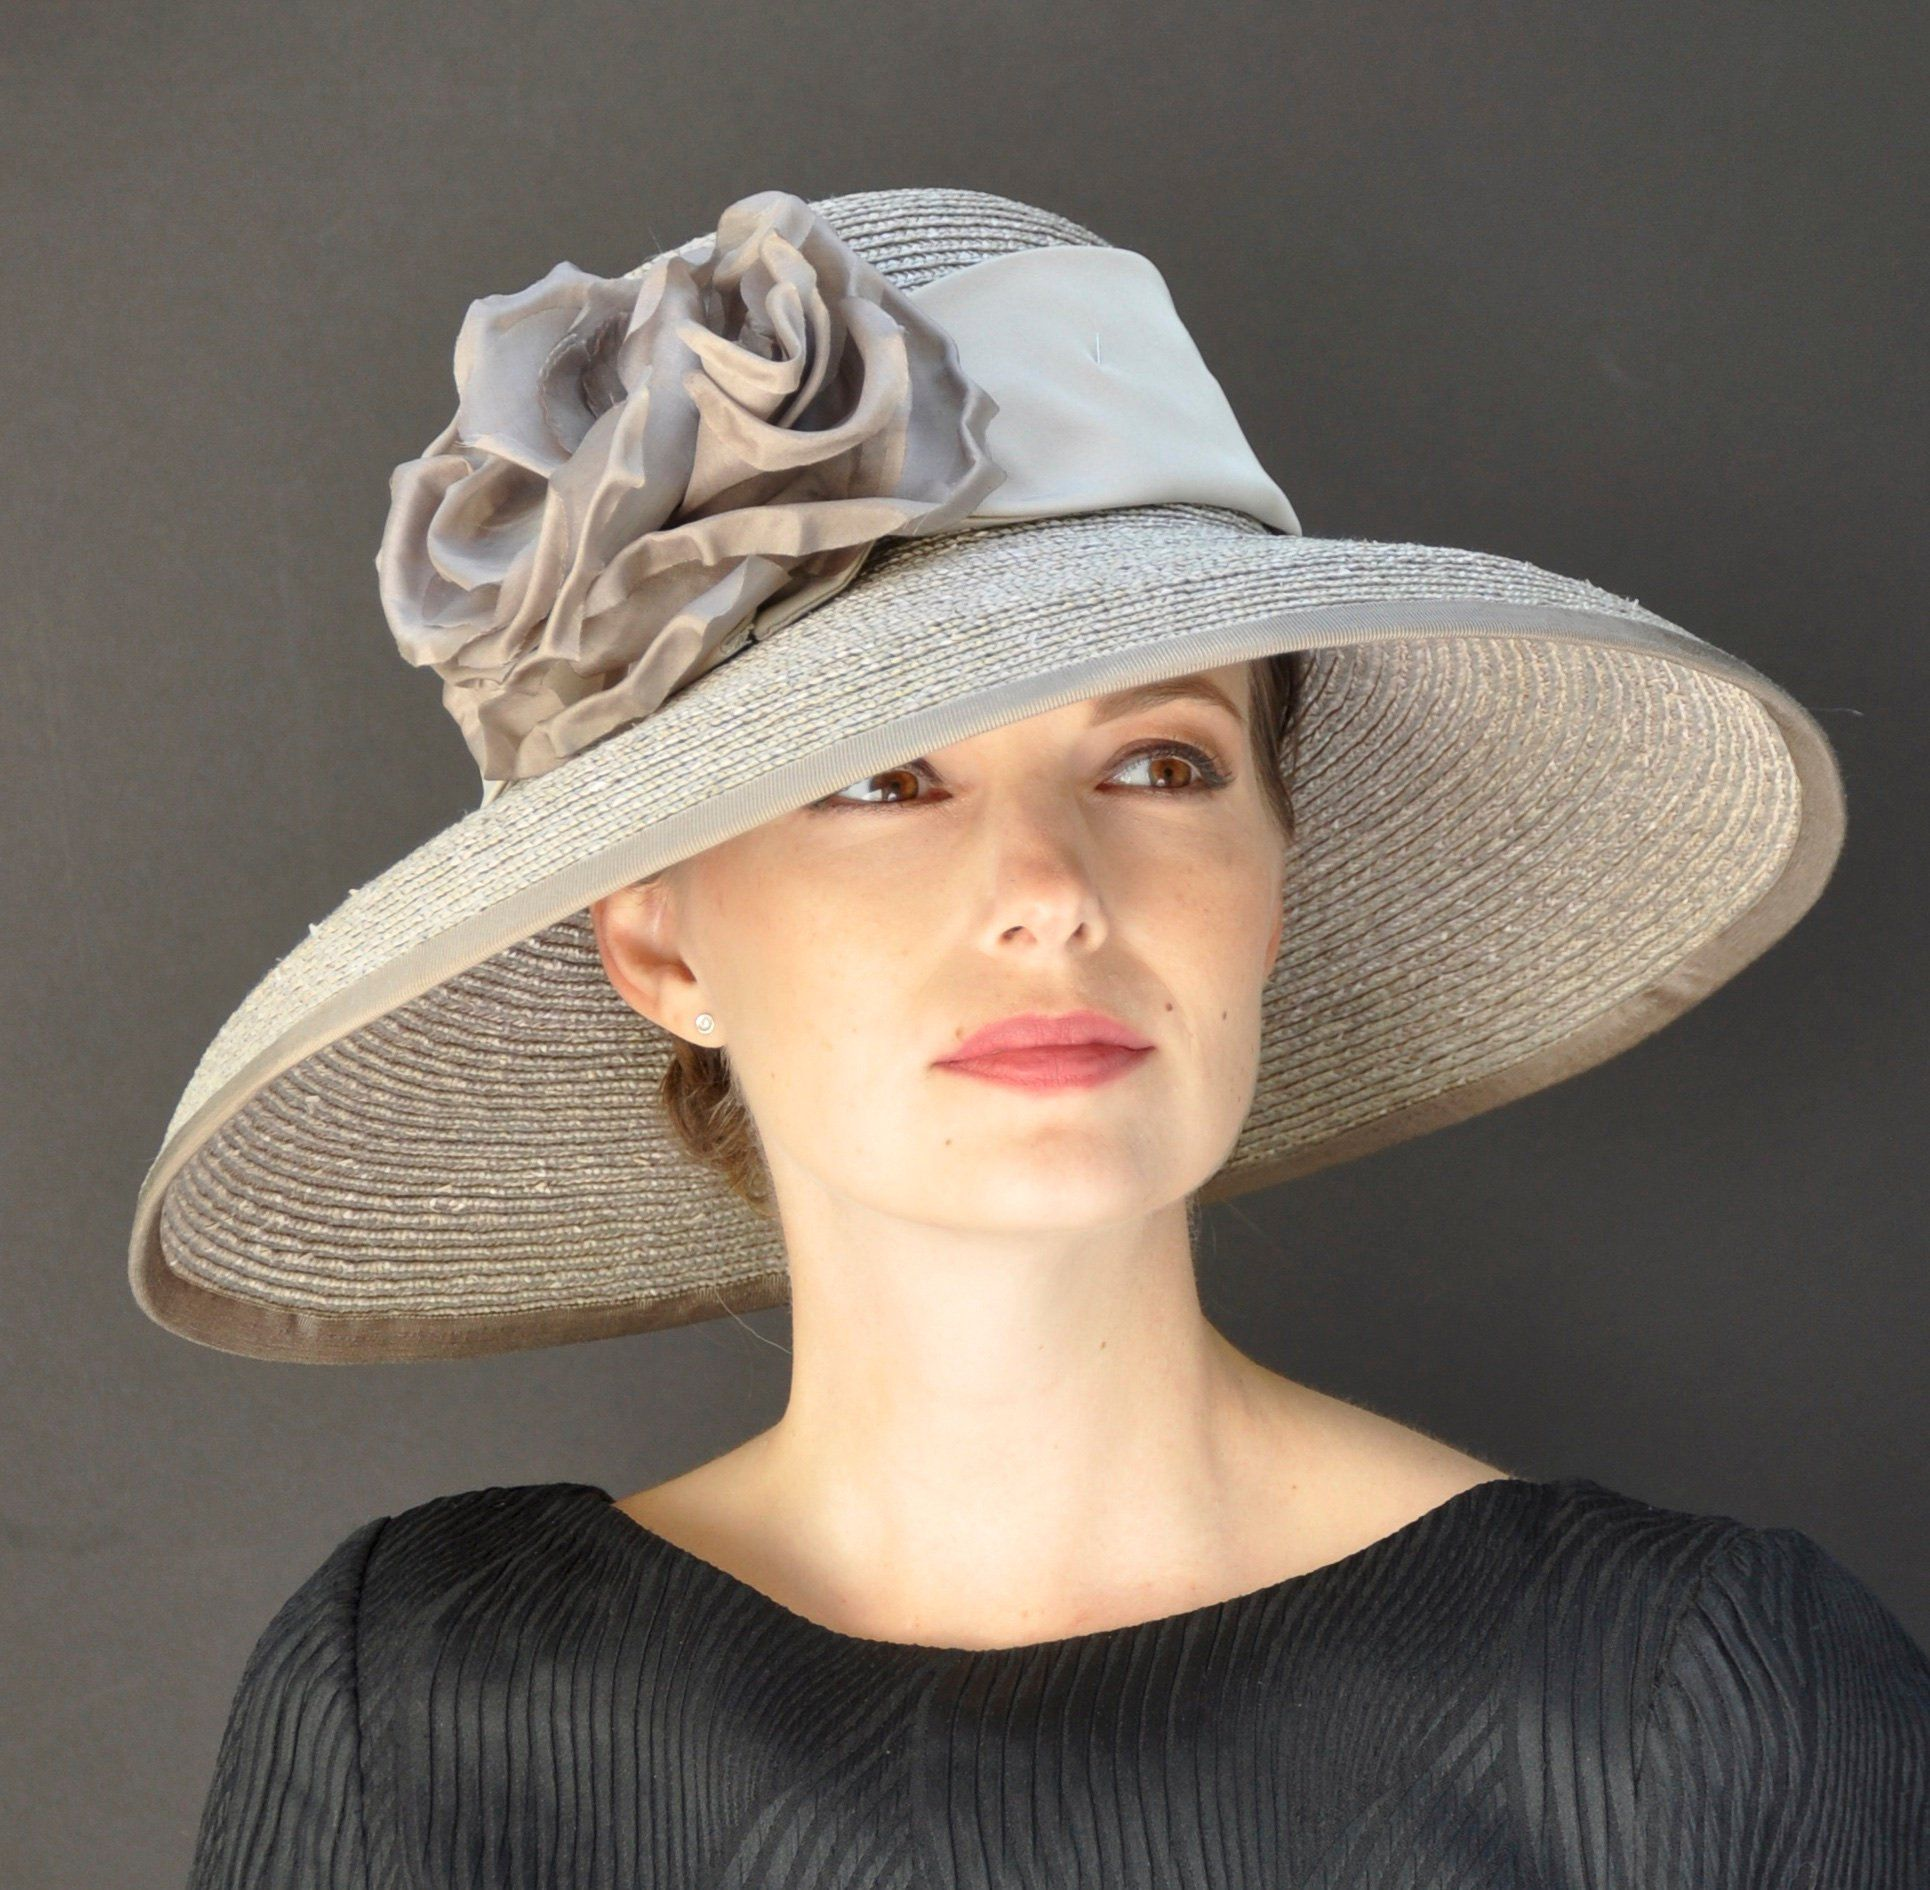 Hut Fashion In Milan: Wedding Hat, Formal Hat, Occasion Hat, Taupe Hat, Audrey